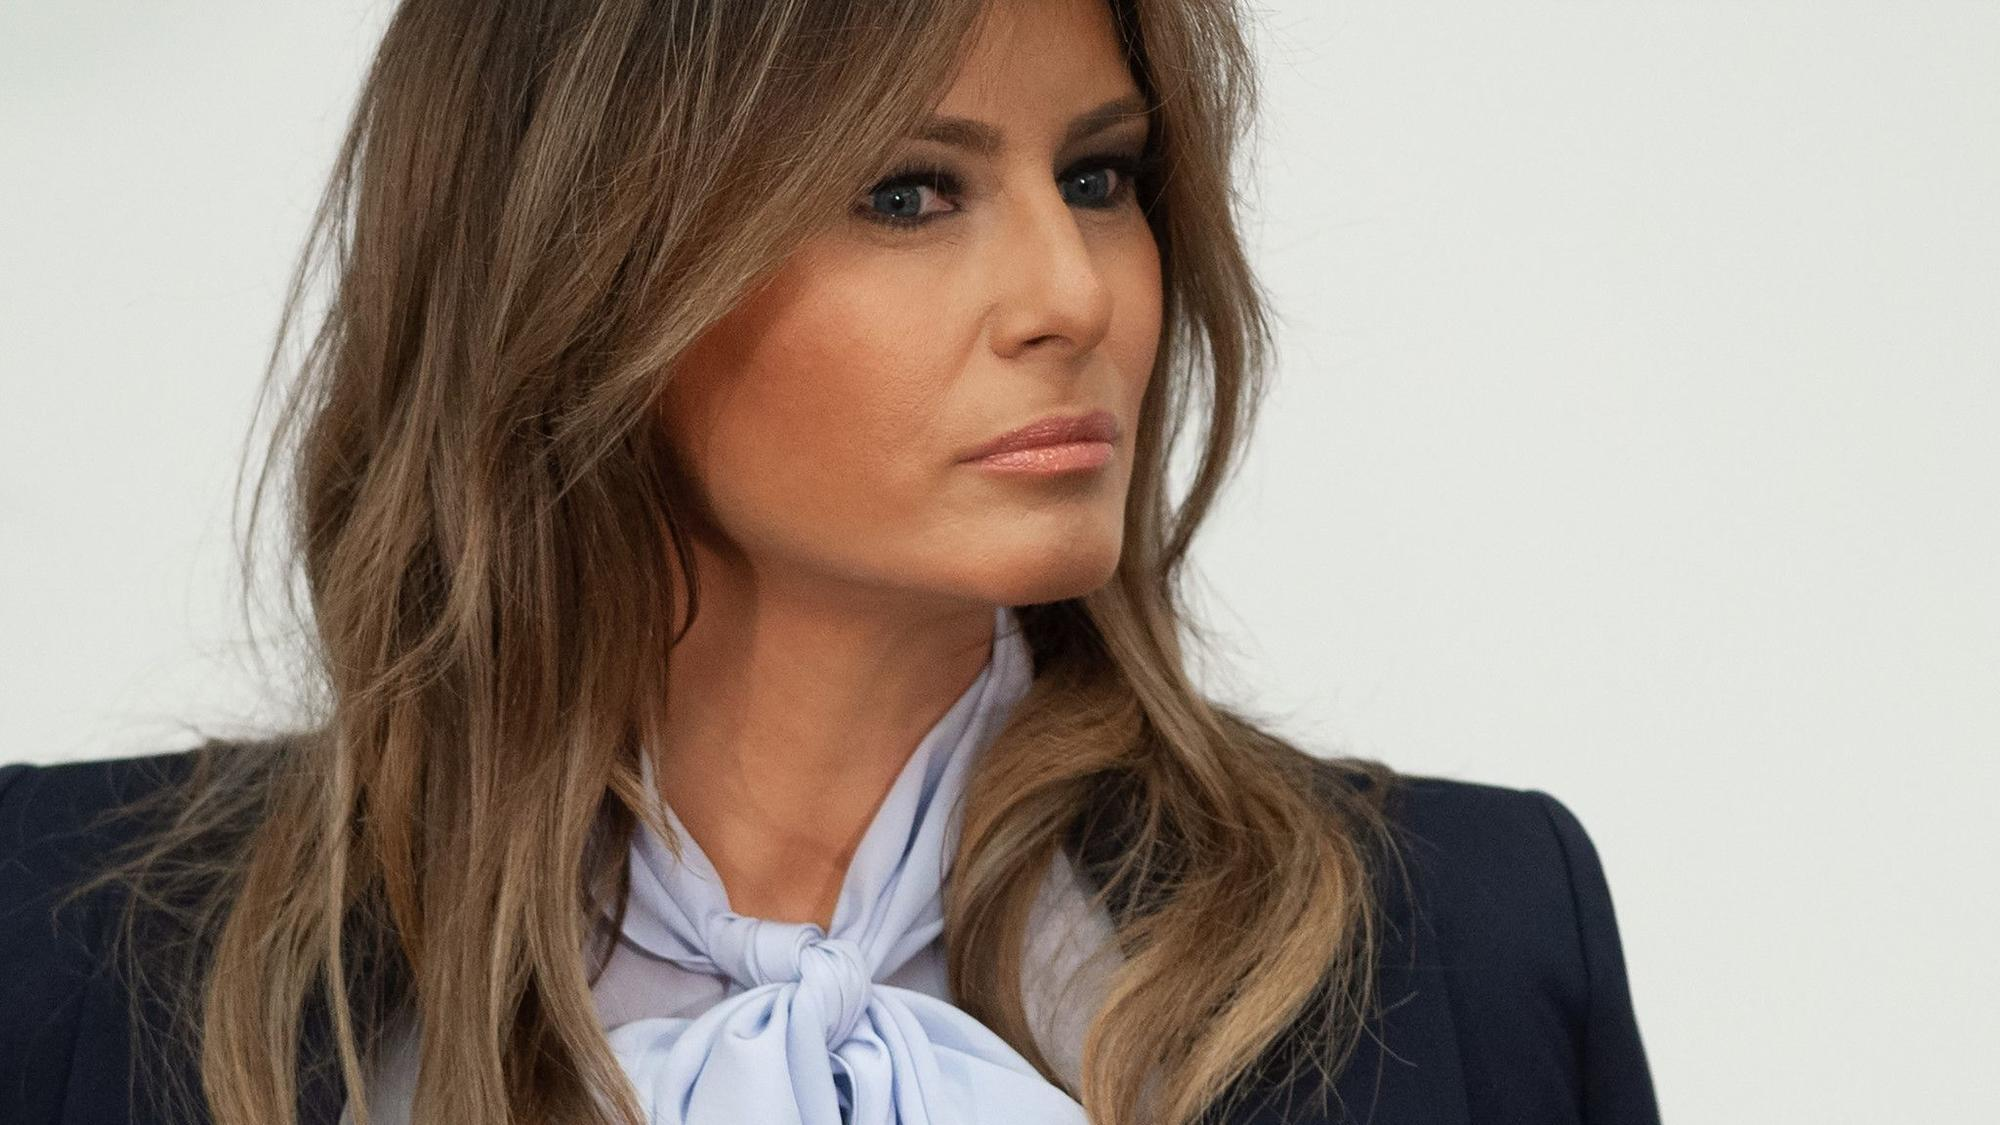 One easy trick for Melania Trump to reduce cyberbullying ...